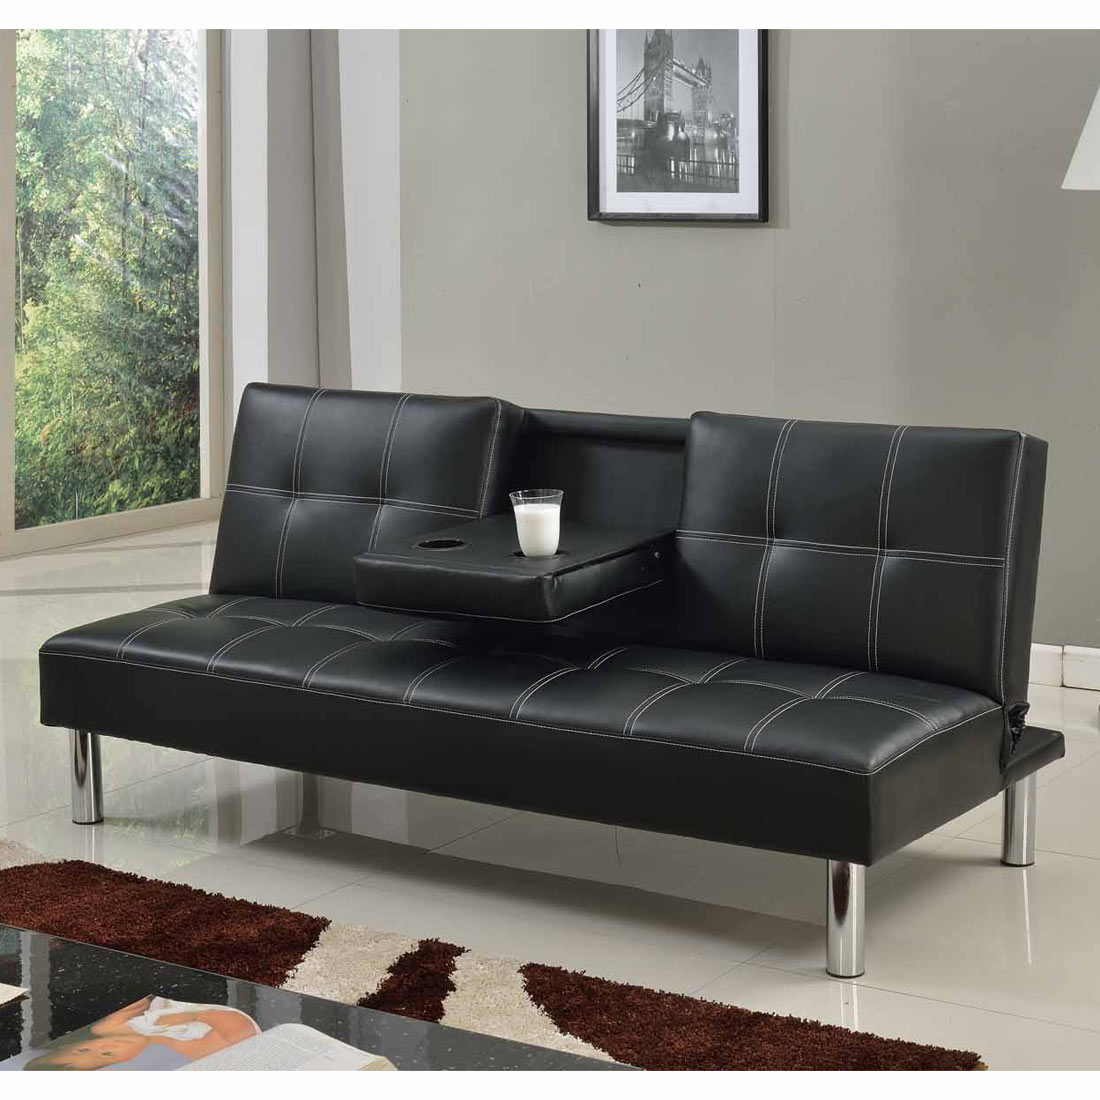 cinemo 3 seater sofa bed faux leather w fold down table. Black Bedroom Furniture Sets. Home Design Ideas